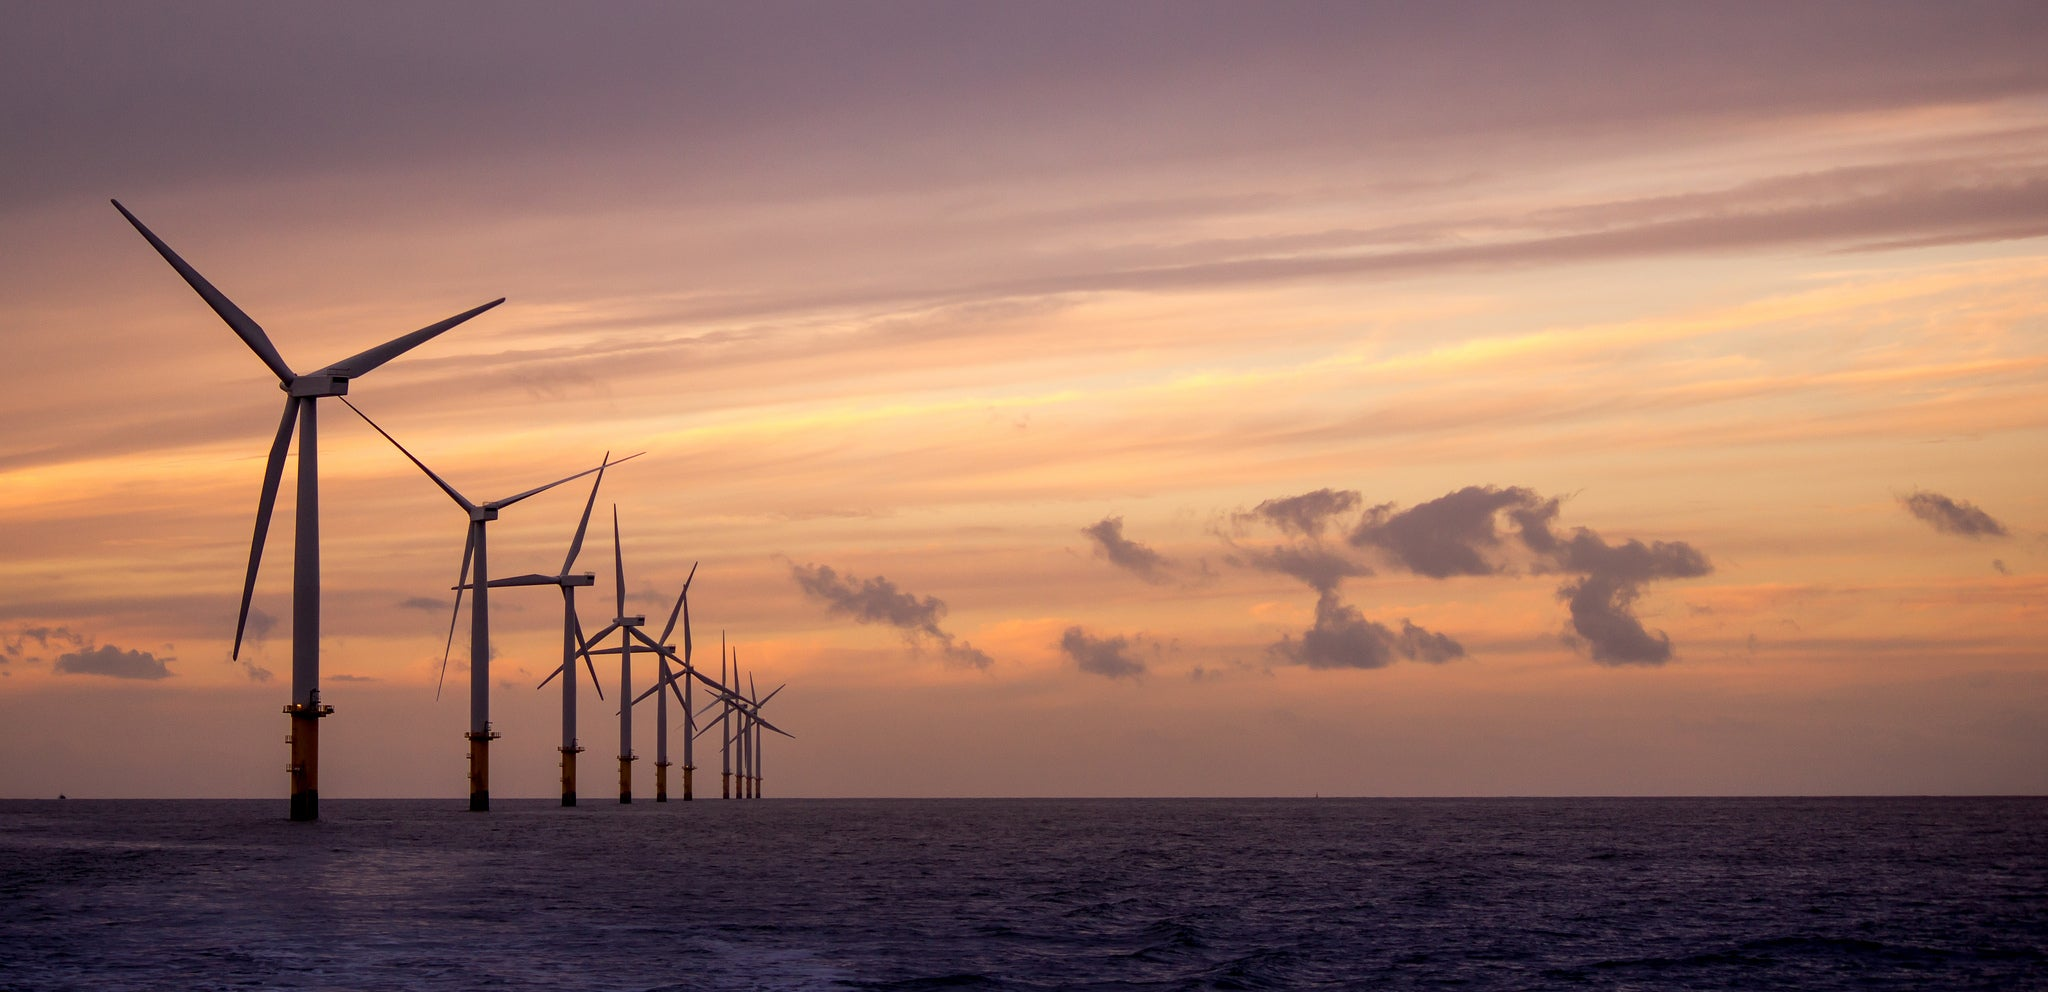 World's Biggest Wind Farm To Be Built Off the Coast of the UK